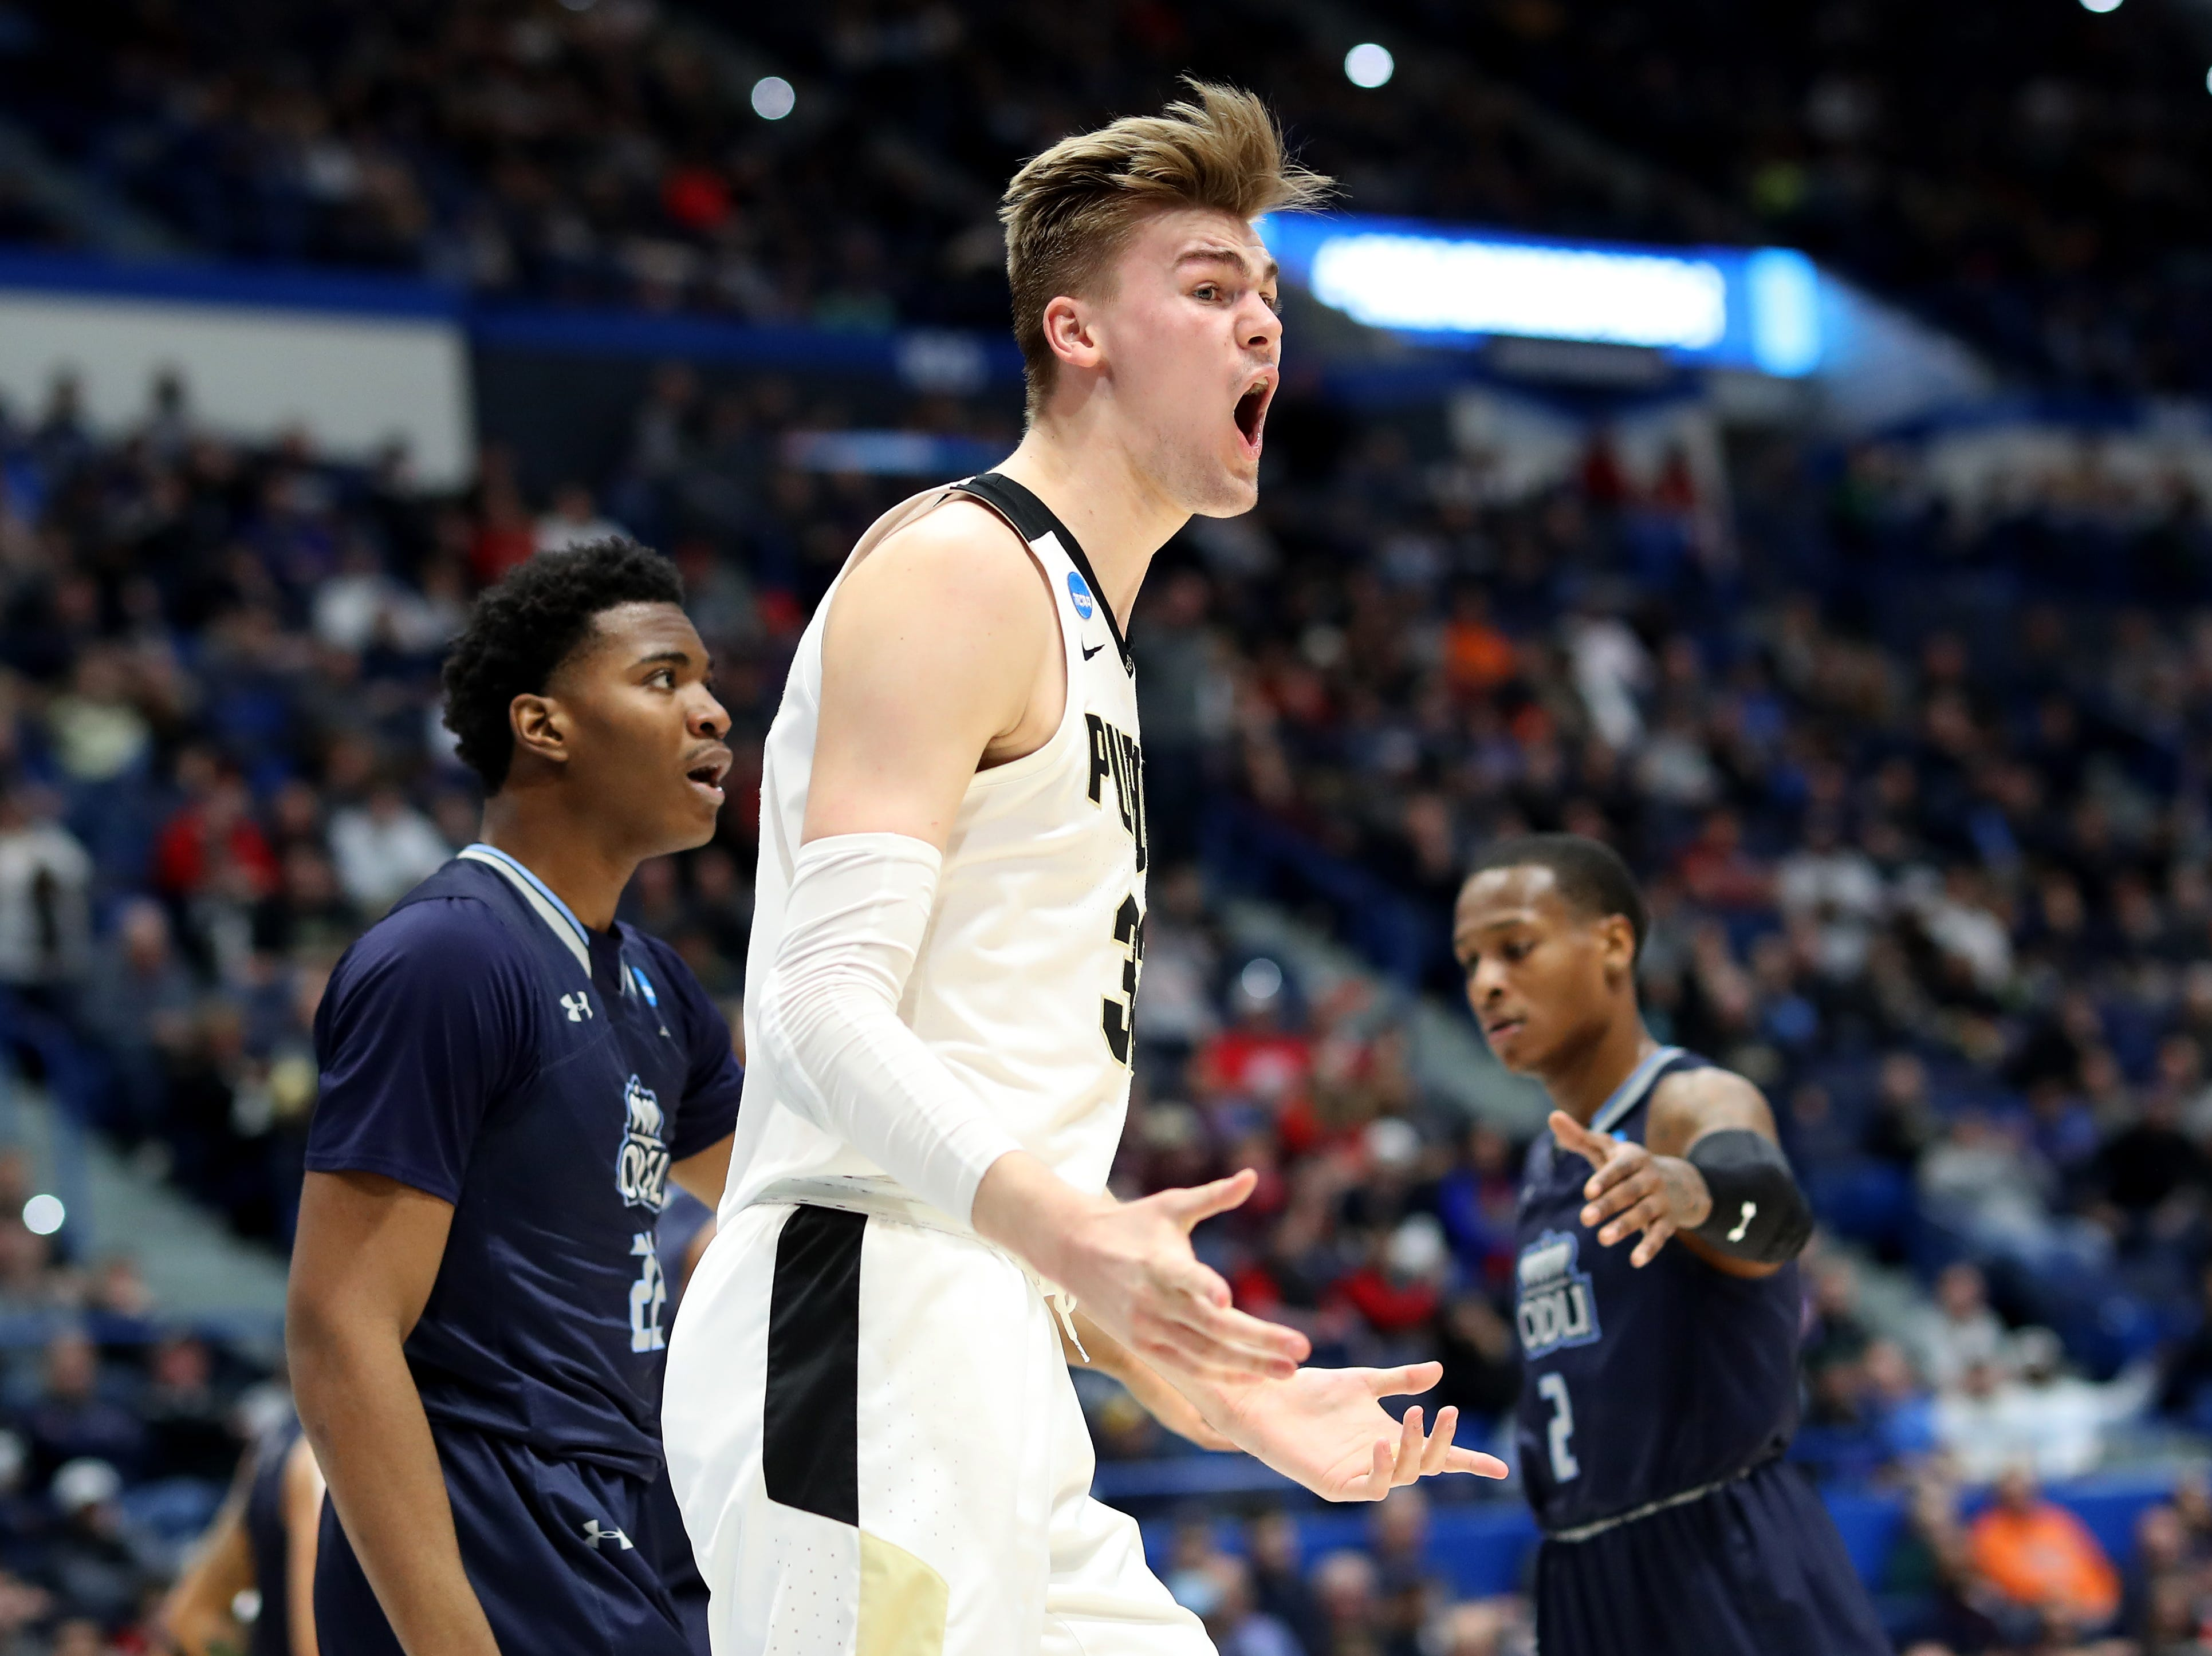 Matt Haarms #32 of the Purdue Boilermakers reacts after a play in the first half against the Old Dominion Monarchs during the 2019 NCAA Men's Basketball Tournament at XL Center on March 21, 2019 in Hartford, Connecticut.